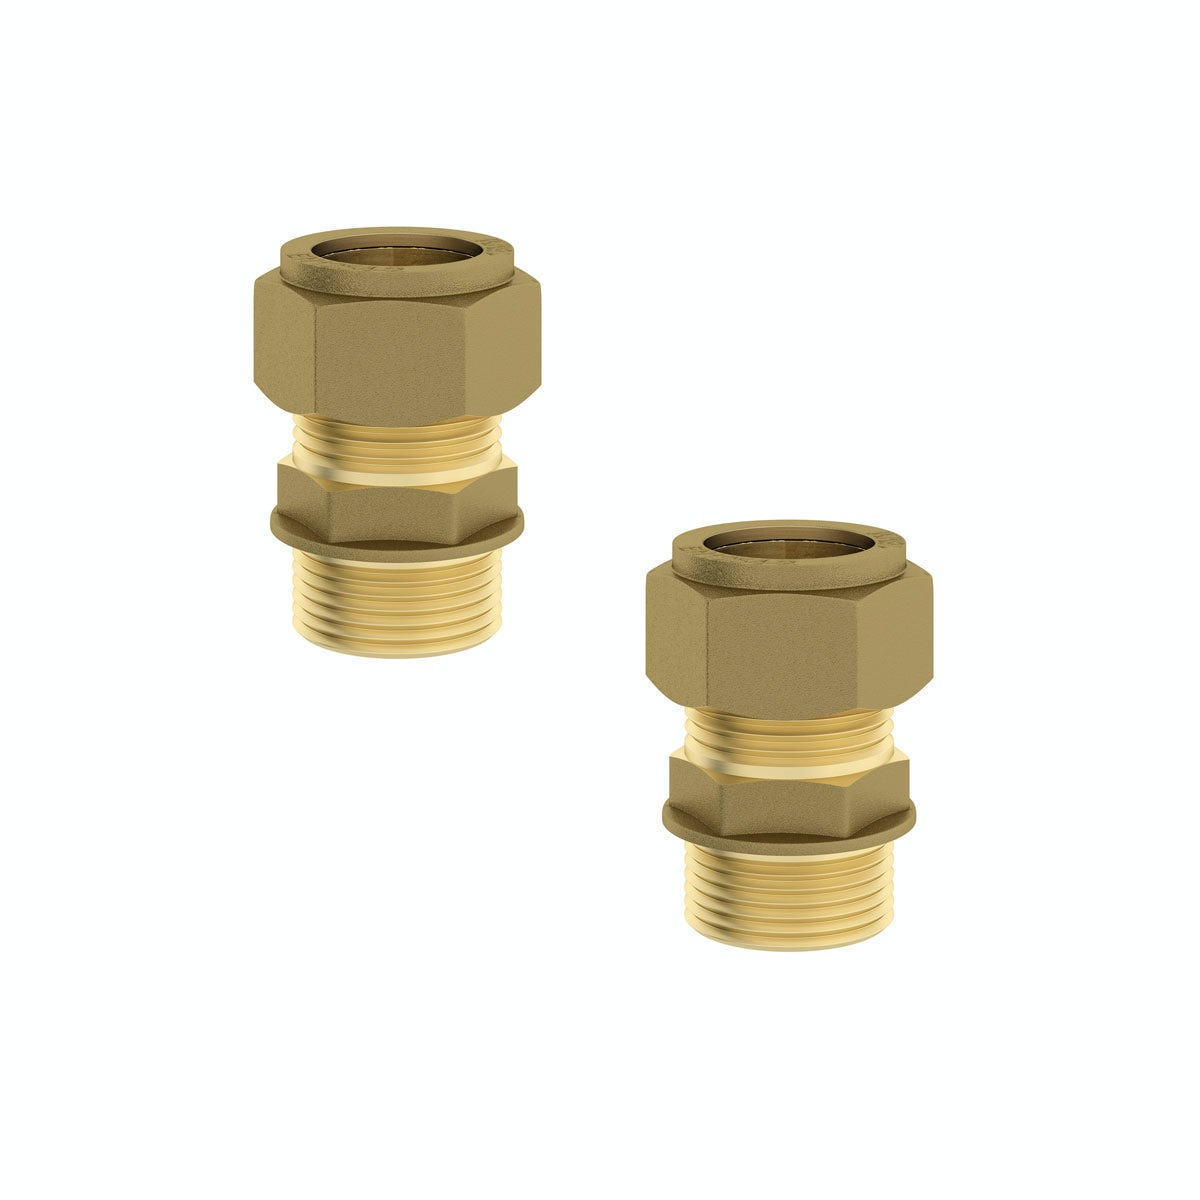 """Straight male connectors 1/2"""" x 15mm (2 pack)"""